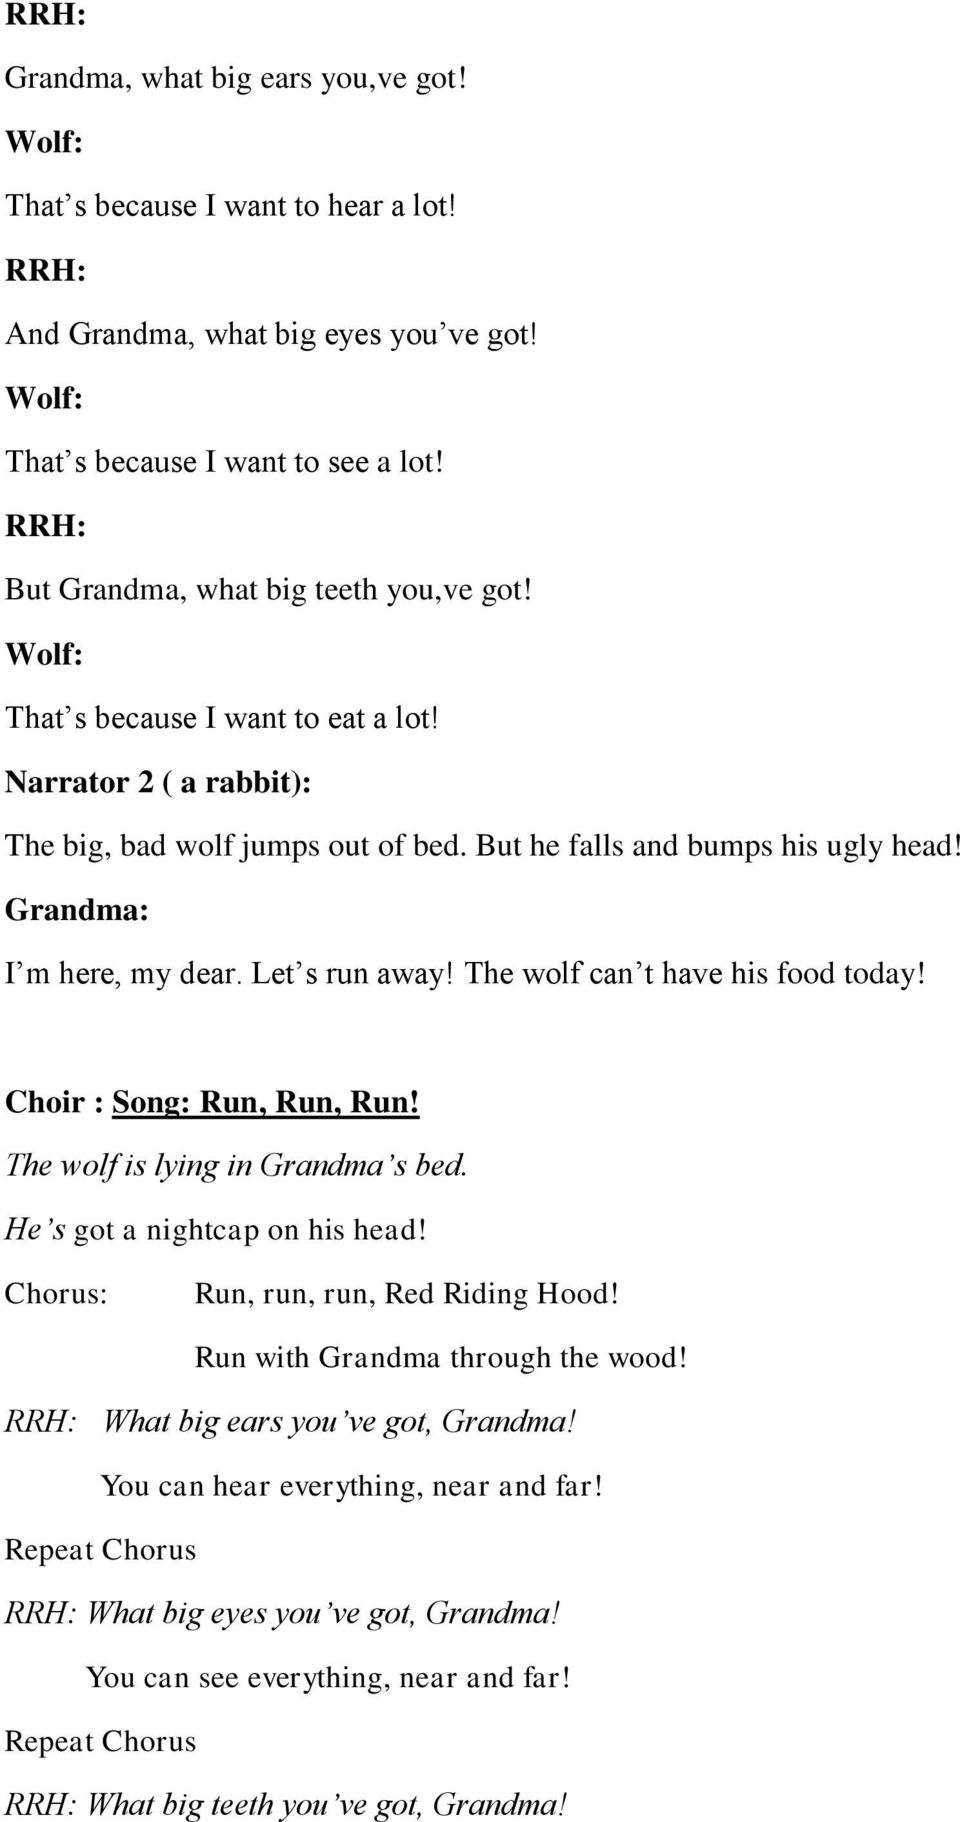 The wolf can t have his food today! Choir : Song: Run, Run, Run! The wolf is lying in Grandma s bed. He s got a nightcap on his head! Chorus: Run, run, run, Red Riding Hood!